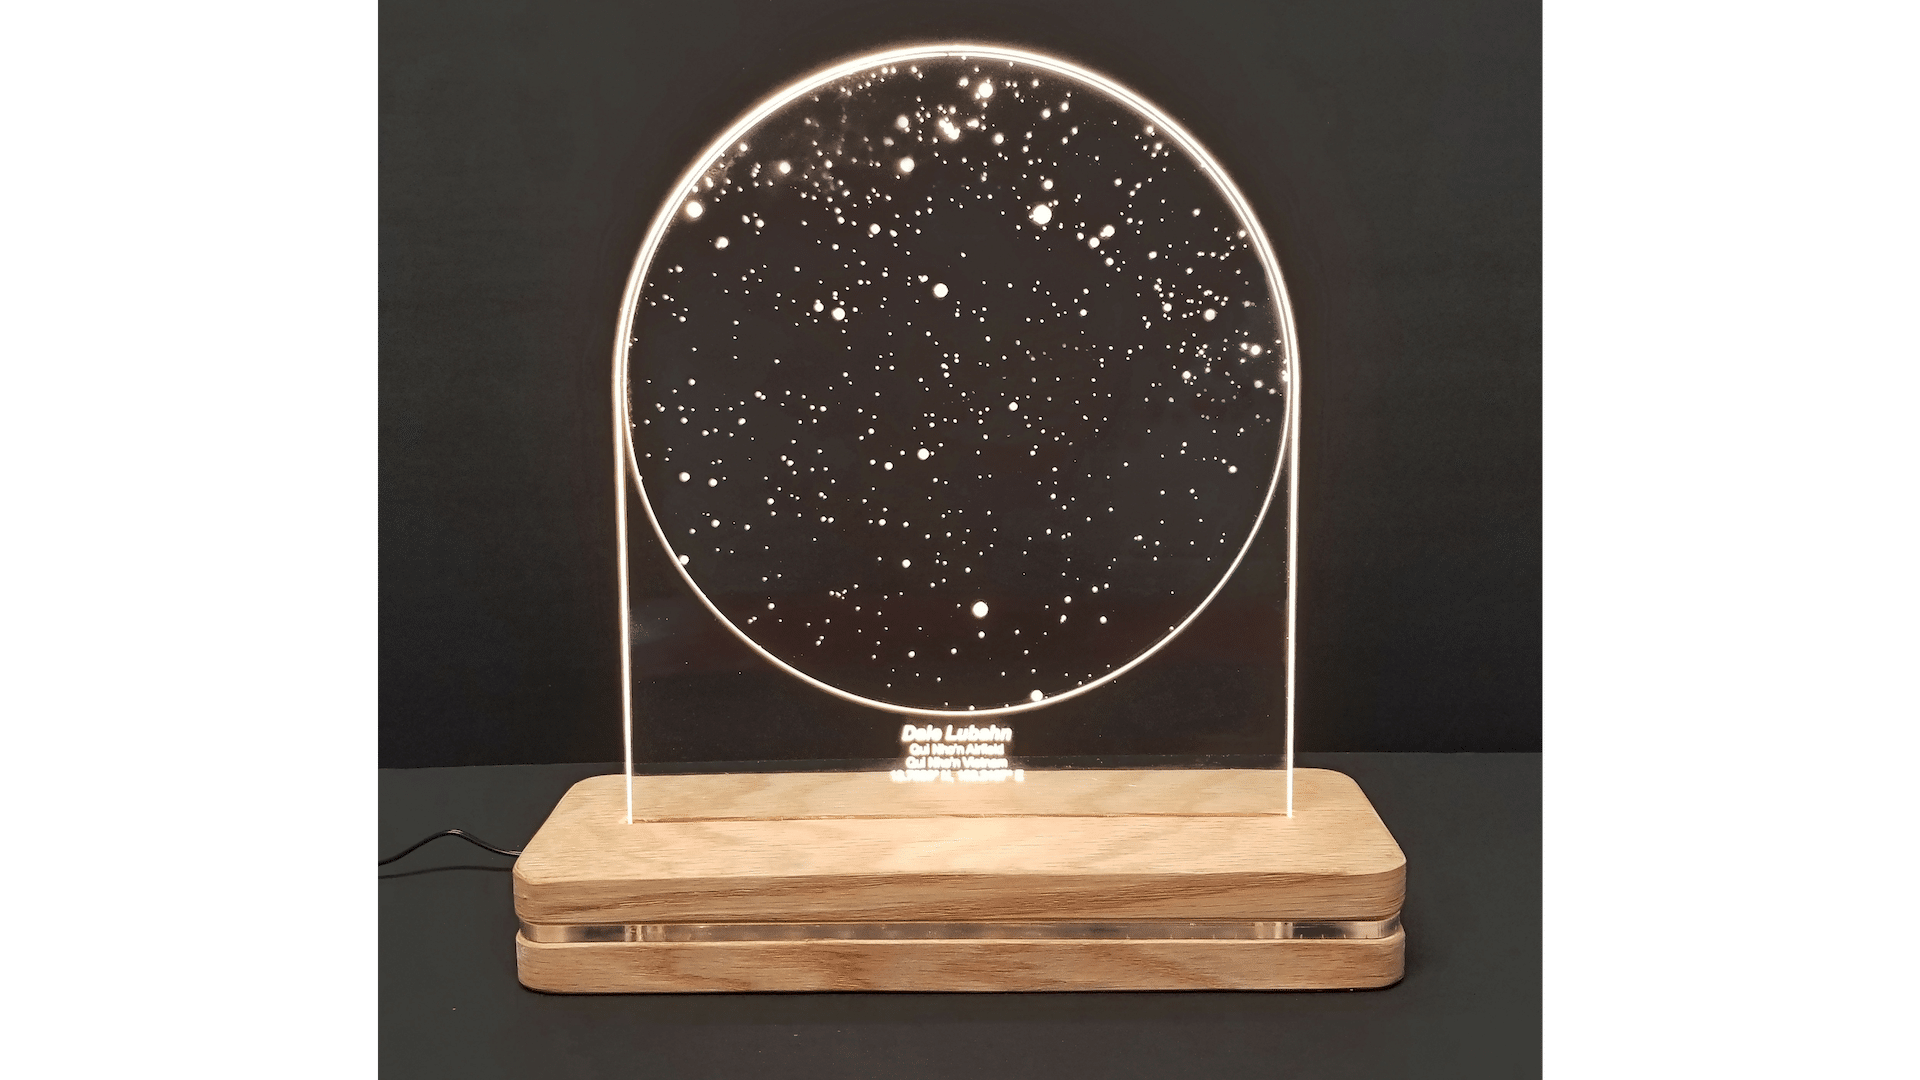 LED Free-Standing Star Map with Image